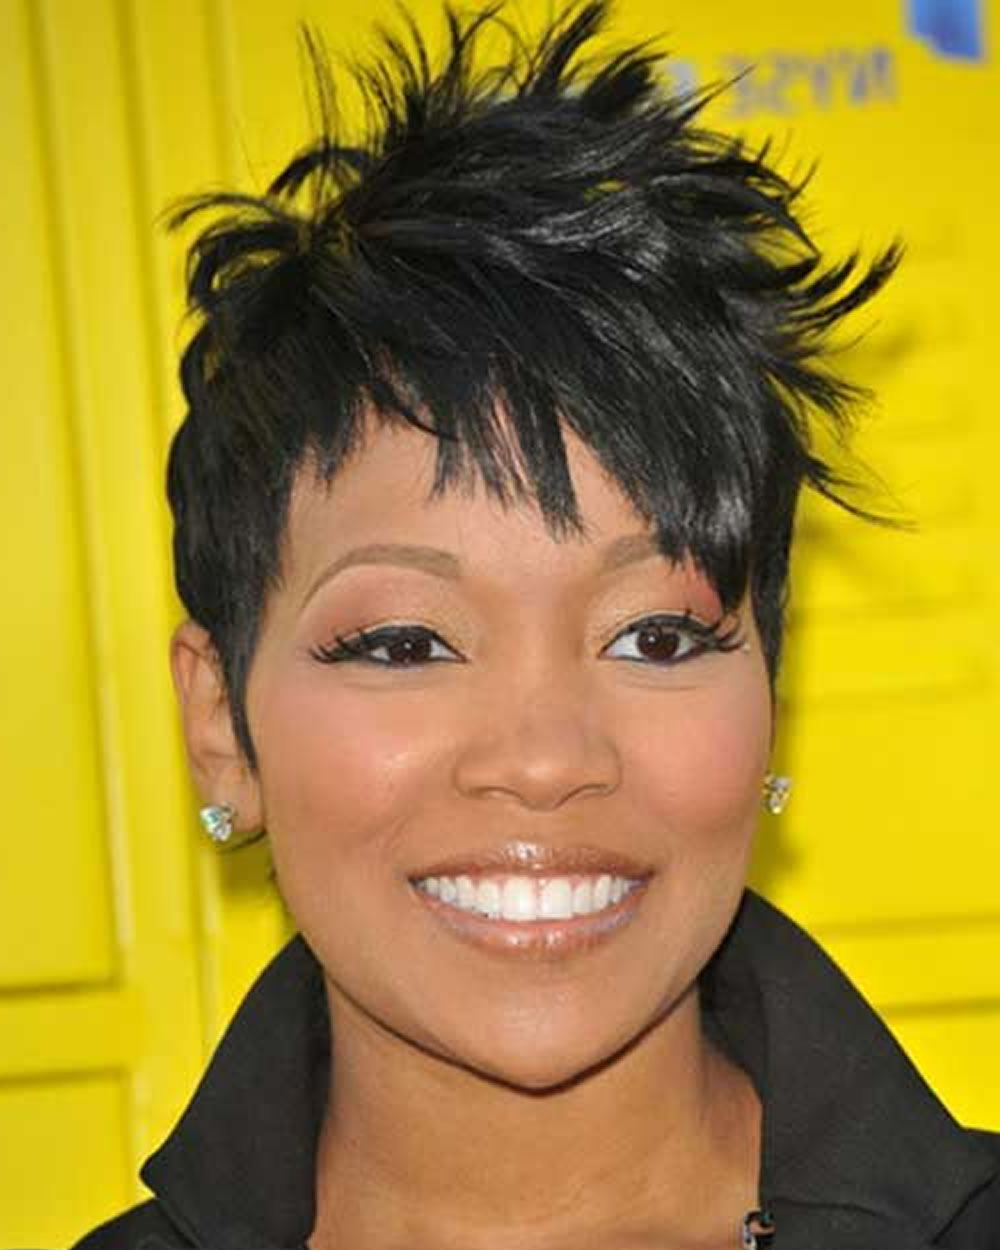 2018 Short Haircuts For Black Women Over 40 With Fine Hair – Hairstyles Intended For Black Women With Short Hairstyles (View 6 of 25)